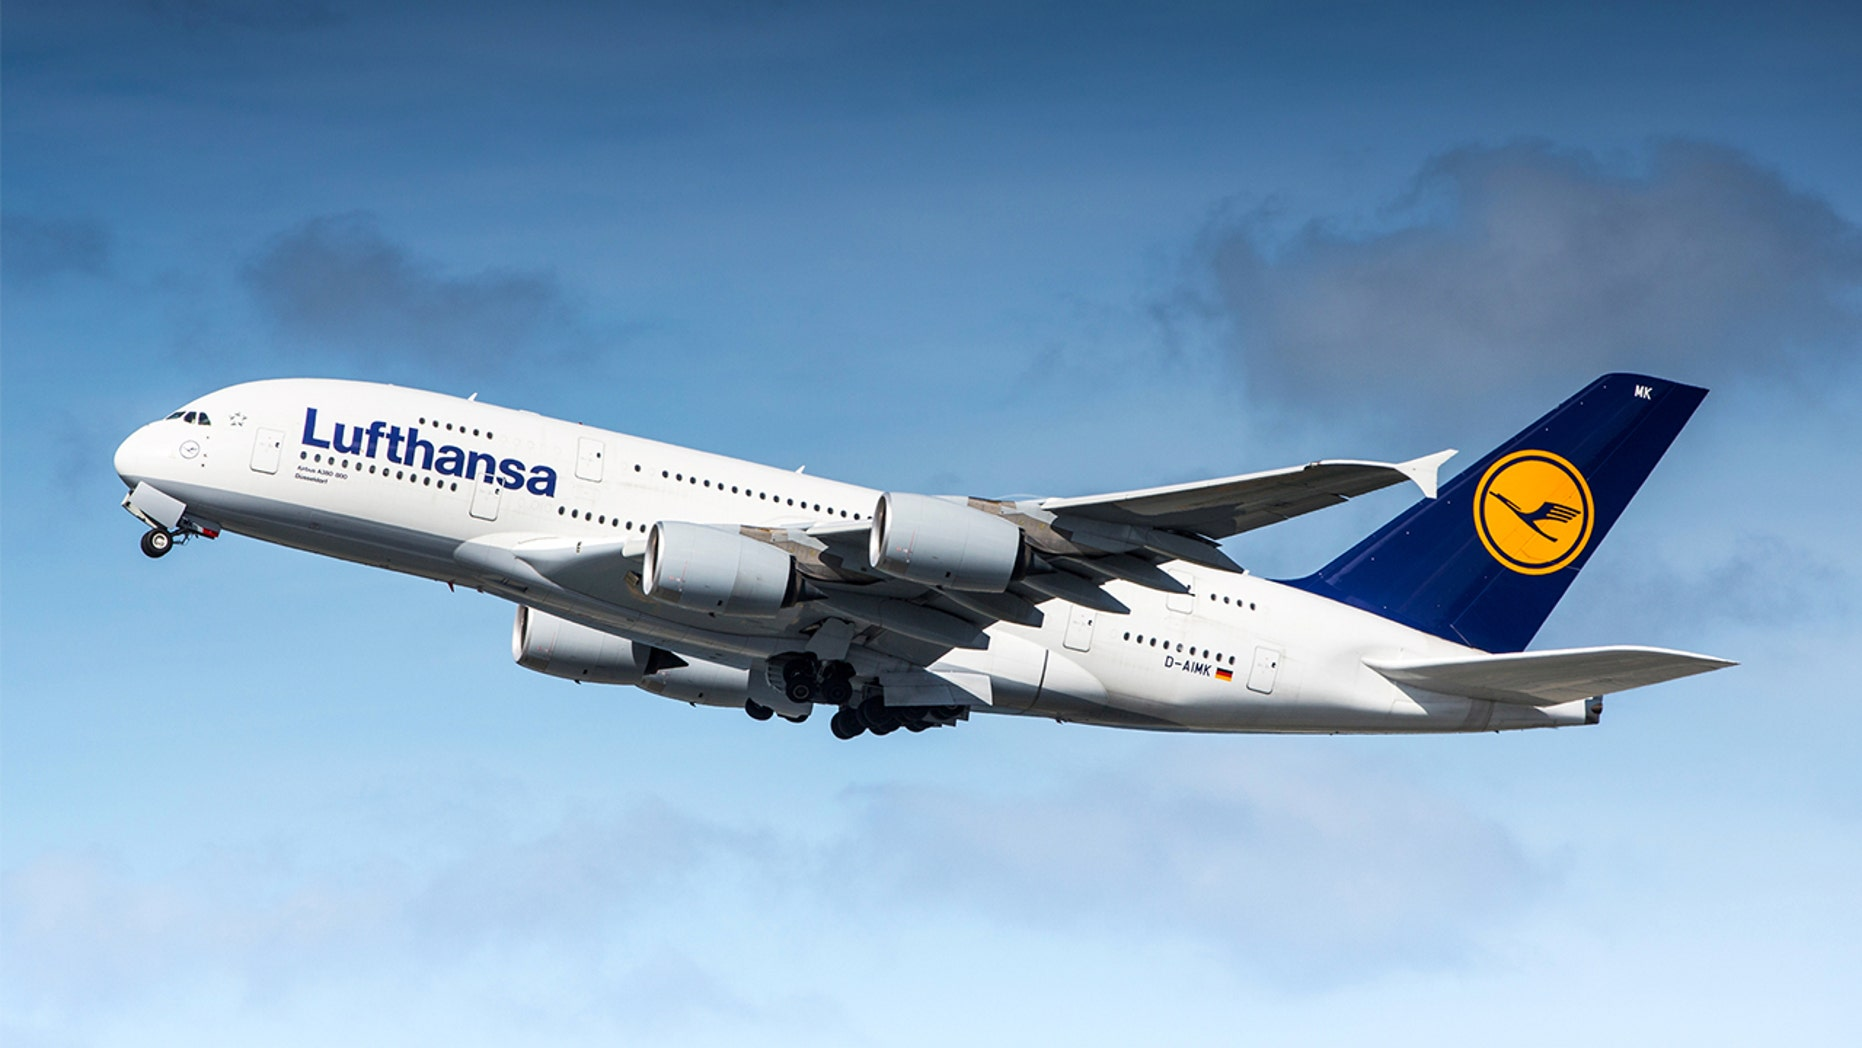 Lufthansa said the dog was injuring himself, prompting crews to remove him from the flight.